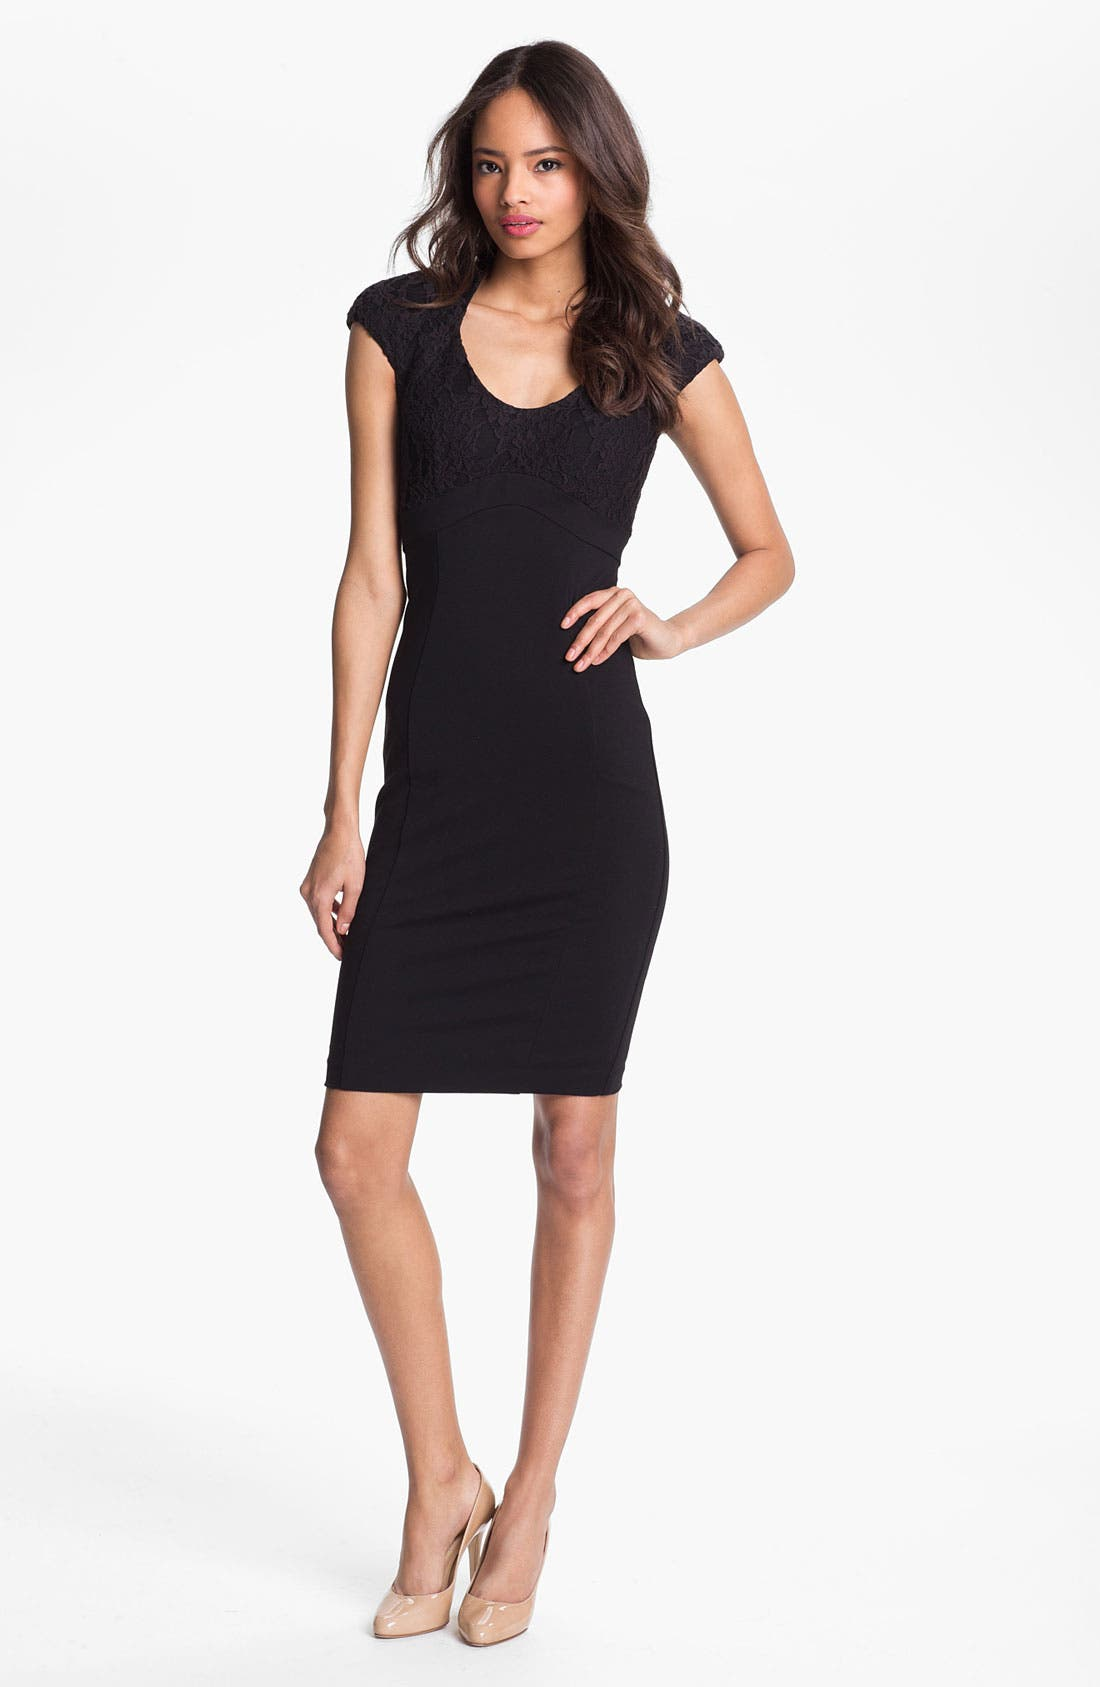 Alternate Image 1 Selected - Ted Baker London Lace Detail Sheath Dress (Online Only)